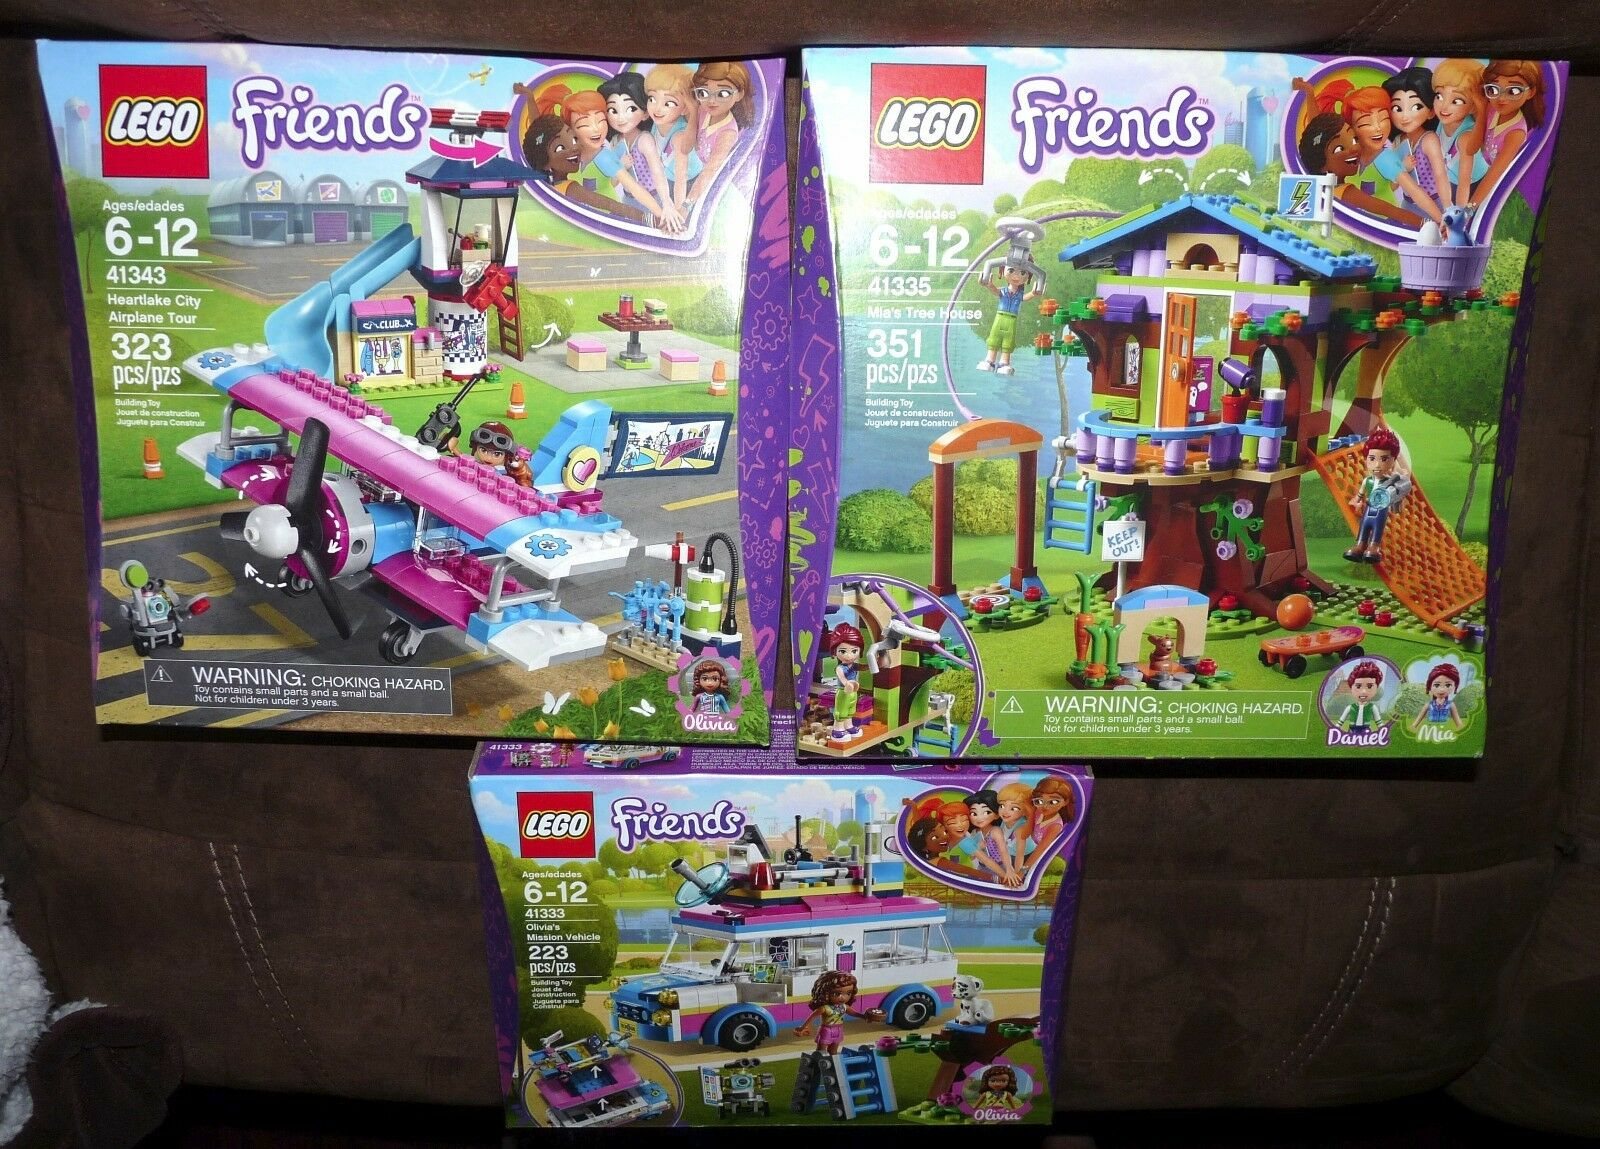 LEGO Friends 41343 Heartlake City Airplane Tour + 41333, 41335 Tree House Olivia